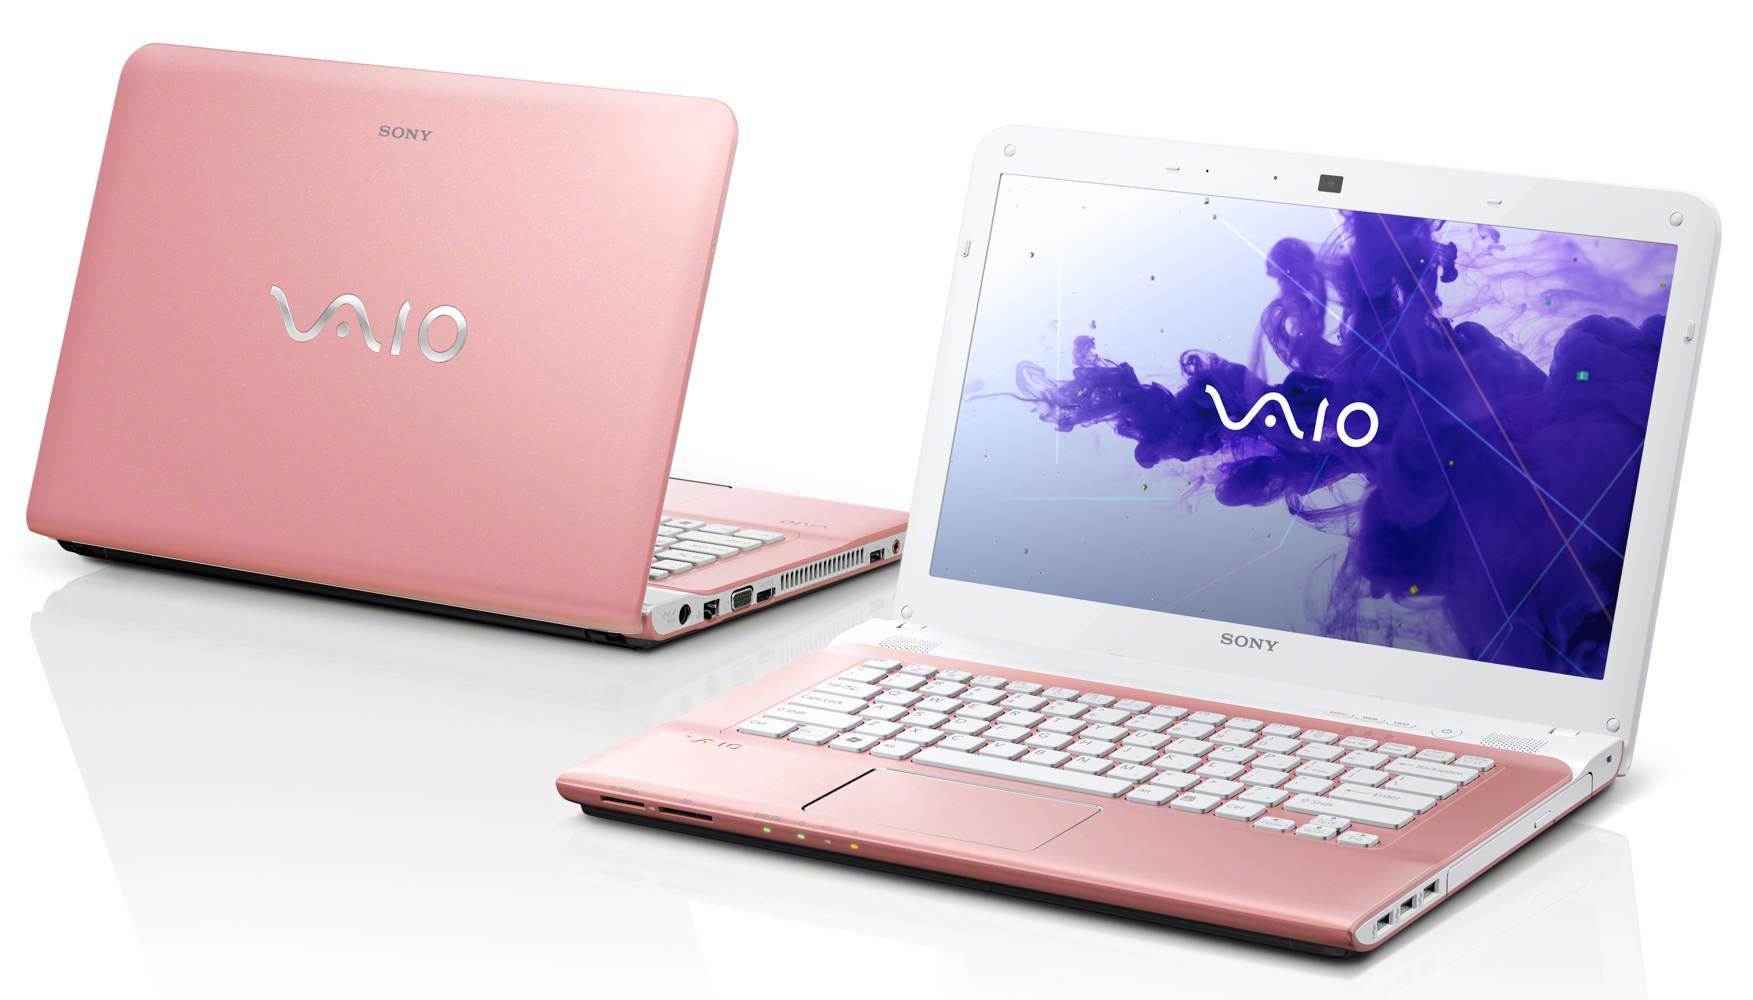 The 14-inch VAIO E Series laptop in pink, powered by Windows 8 ( view